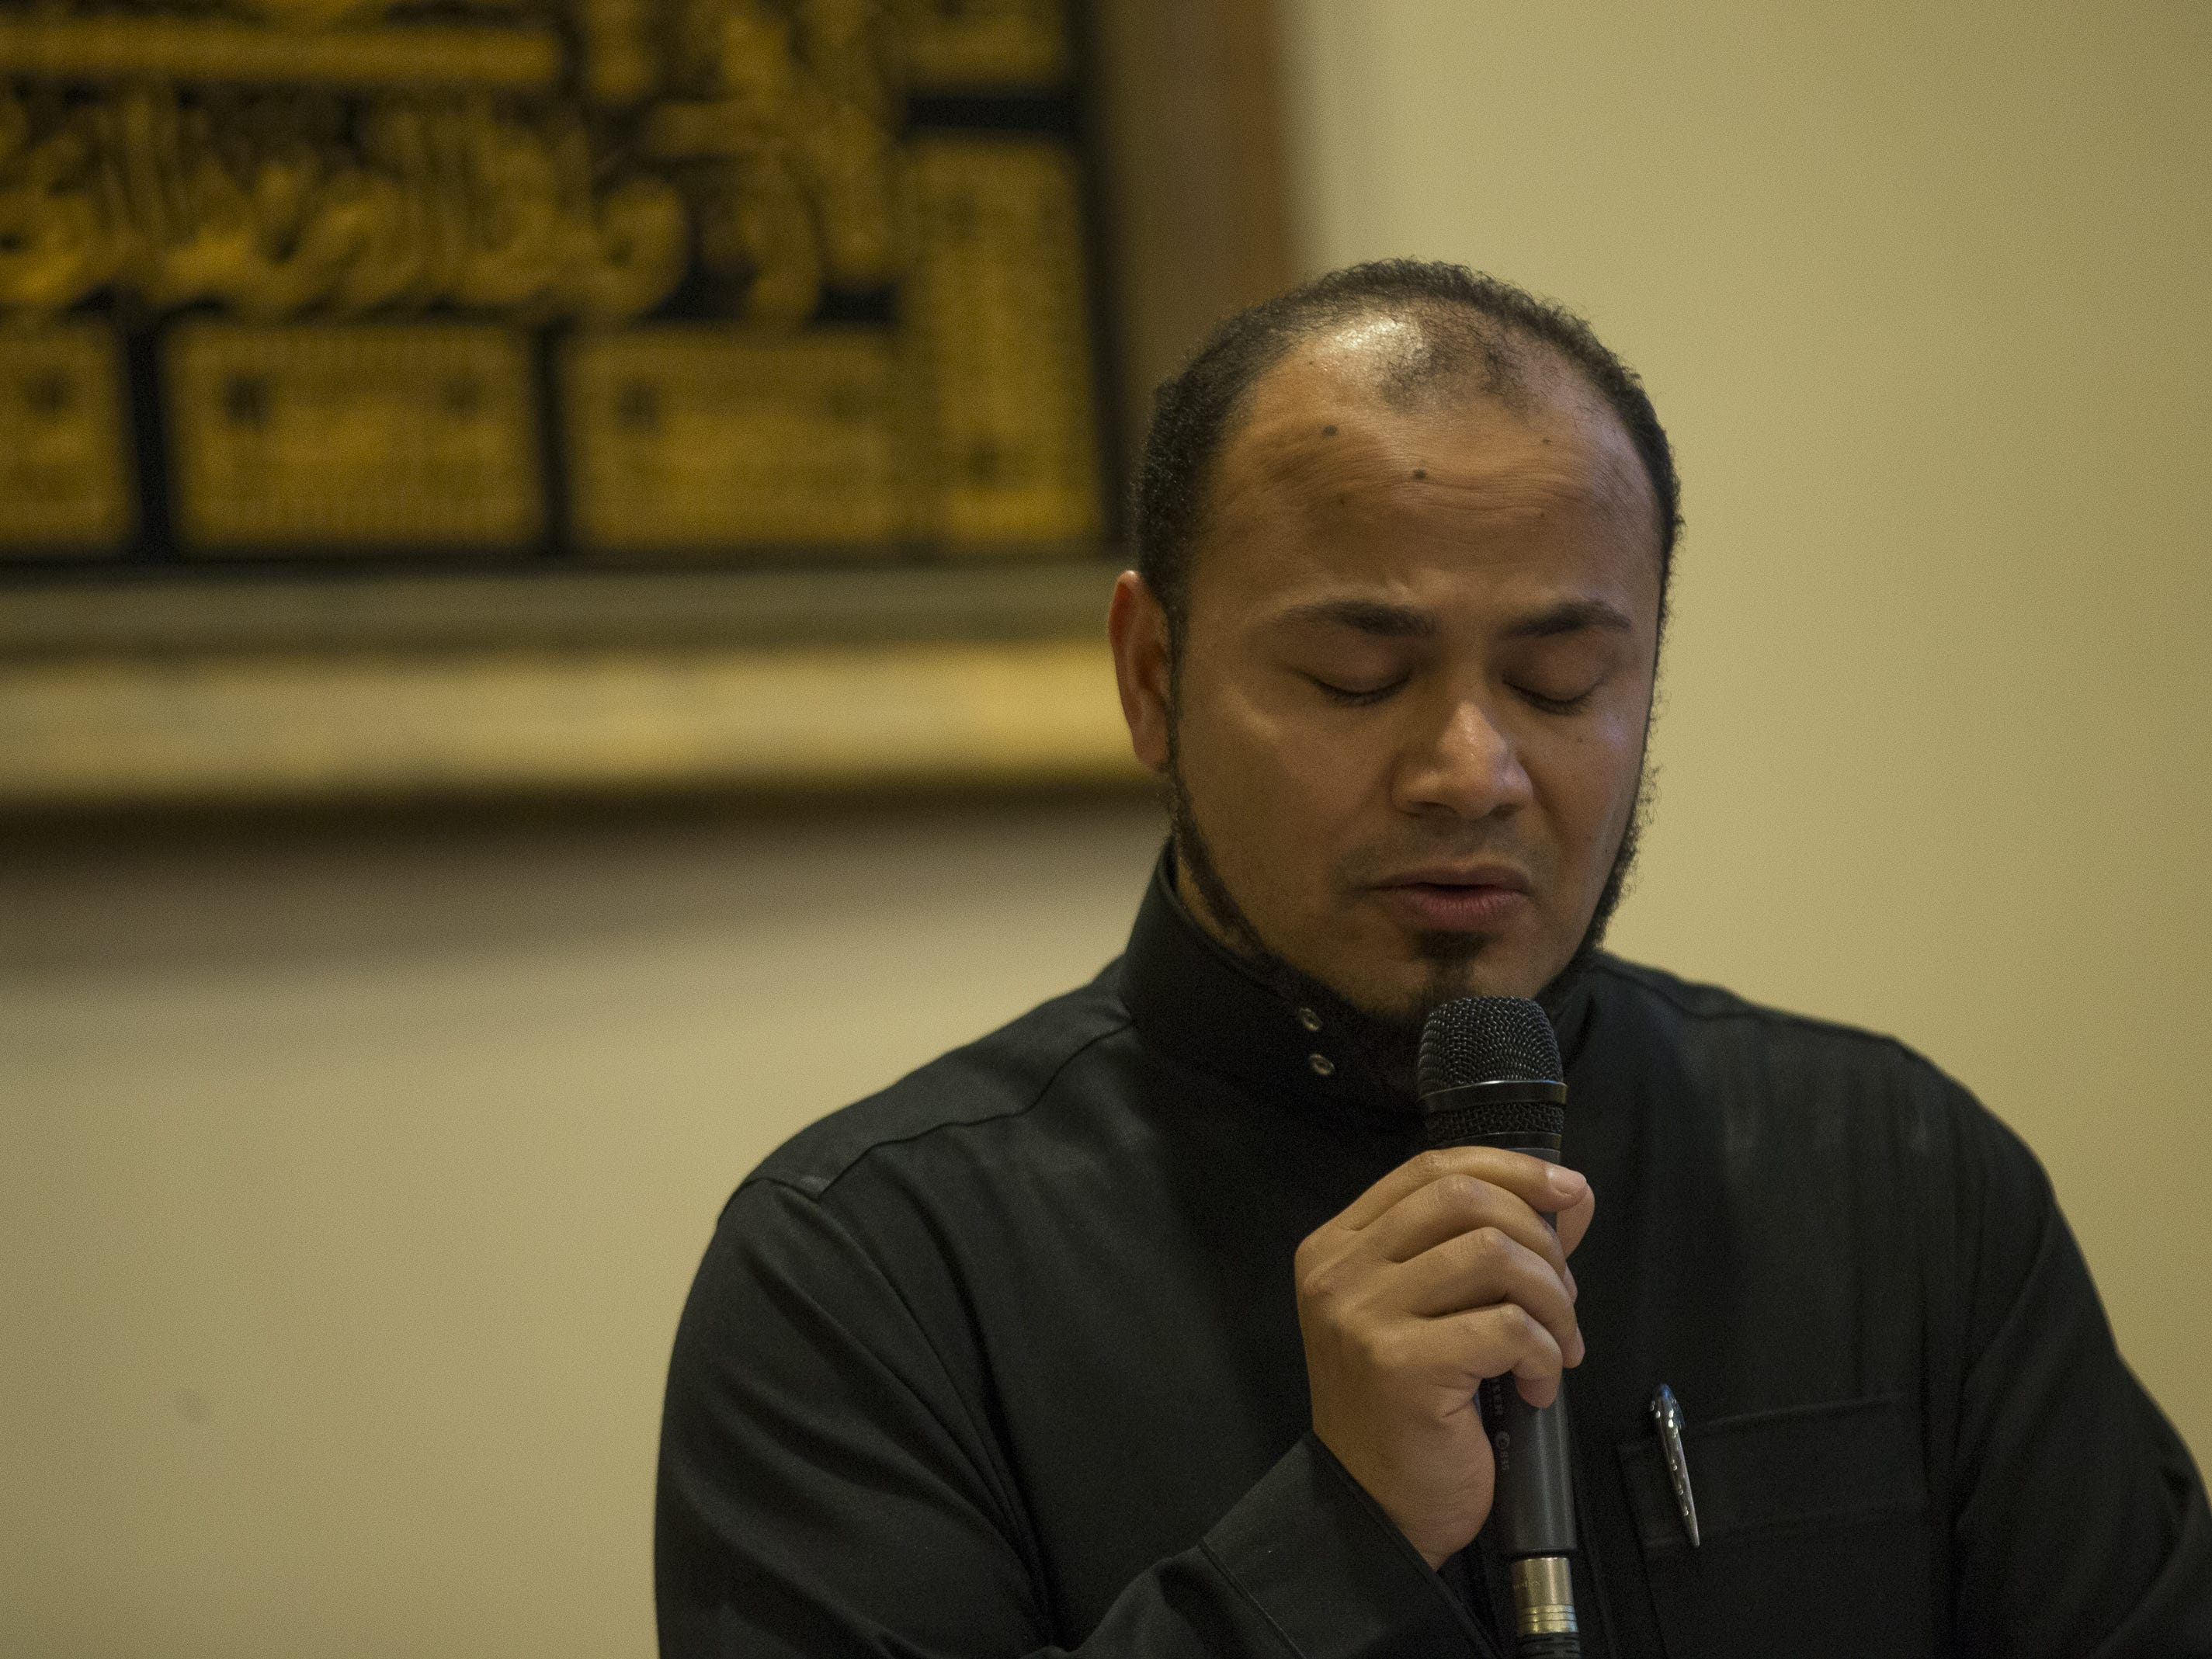 Imaam Moataz Muftah, from the Islamic Center of Northeast Valley, speaks at a vigil held at the ICNV in Scottsdale, Ariz., on Sunday, March 17, 2019, in memory of the Christchurch New Zealand shooting victims.